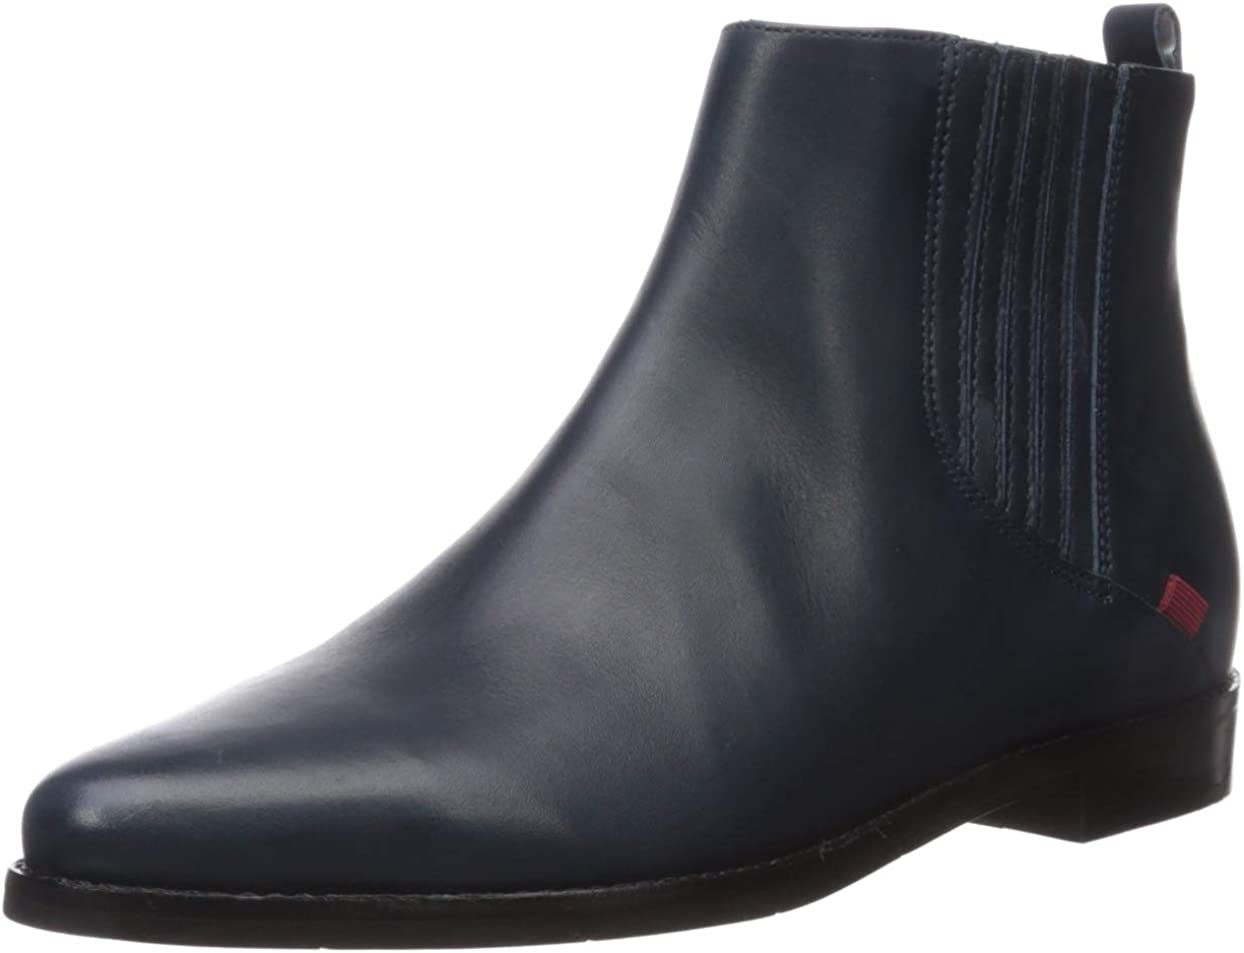 Marc Joseph New York Women's Genuine Leather Made in Brazil Luxury Ankle Boot, navy nappa, 11 M US